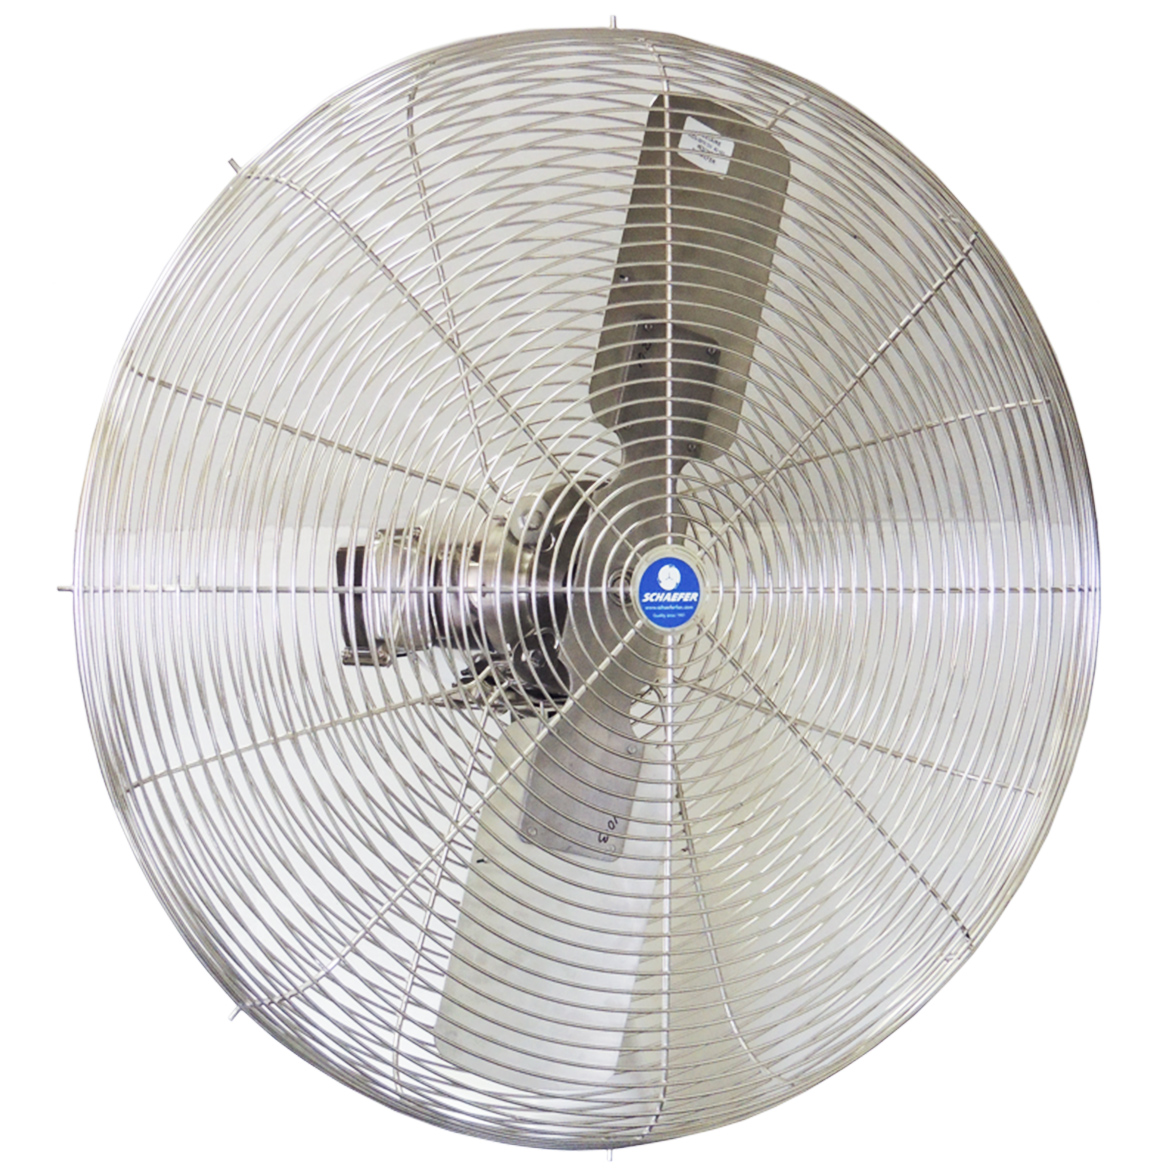 Schaefer 30CFO-SWDS-3-HV 60 Volt 3 4 HP High Velocity 30-Inch Washdown Duty Fan by